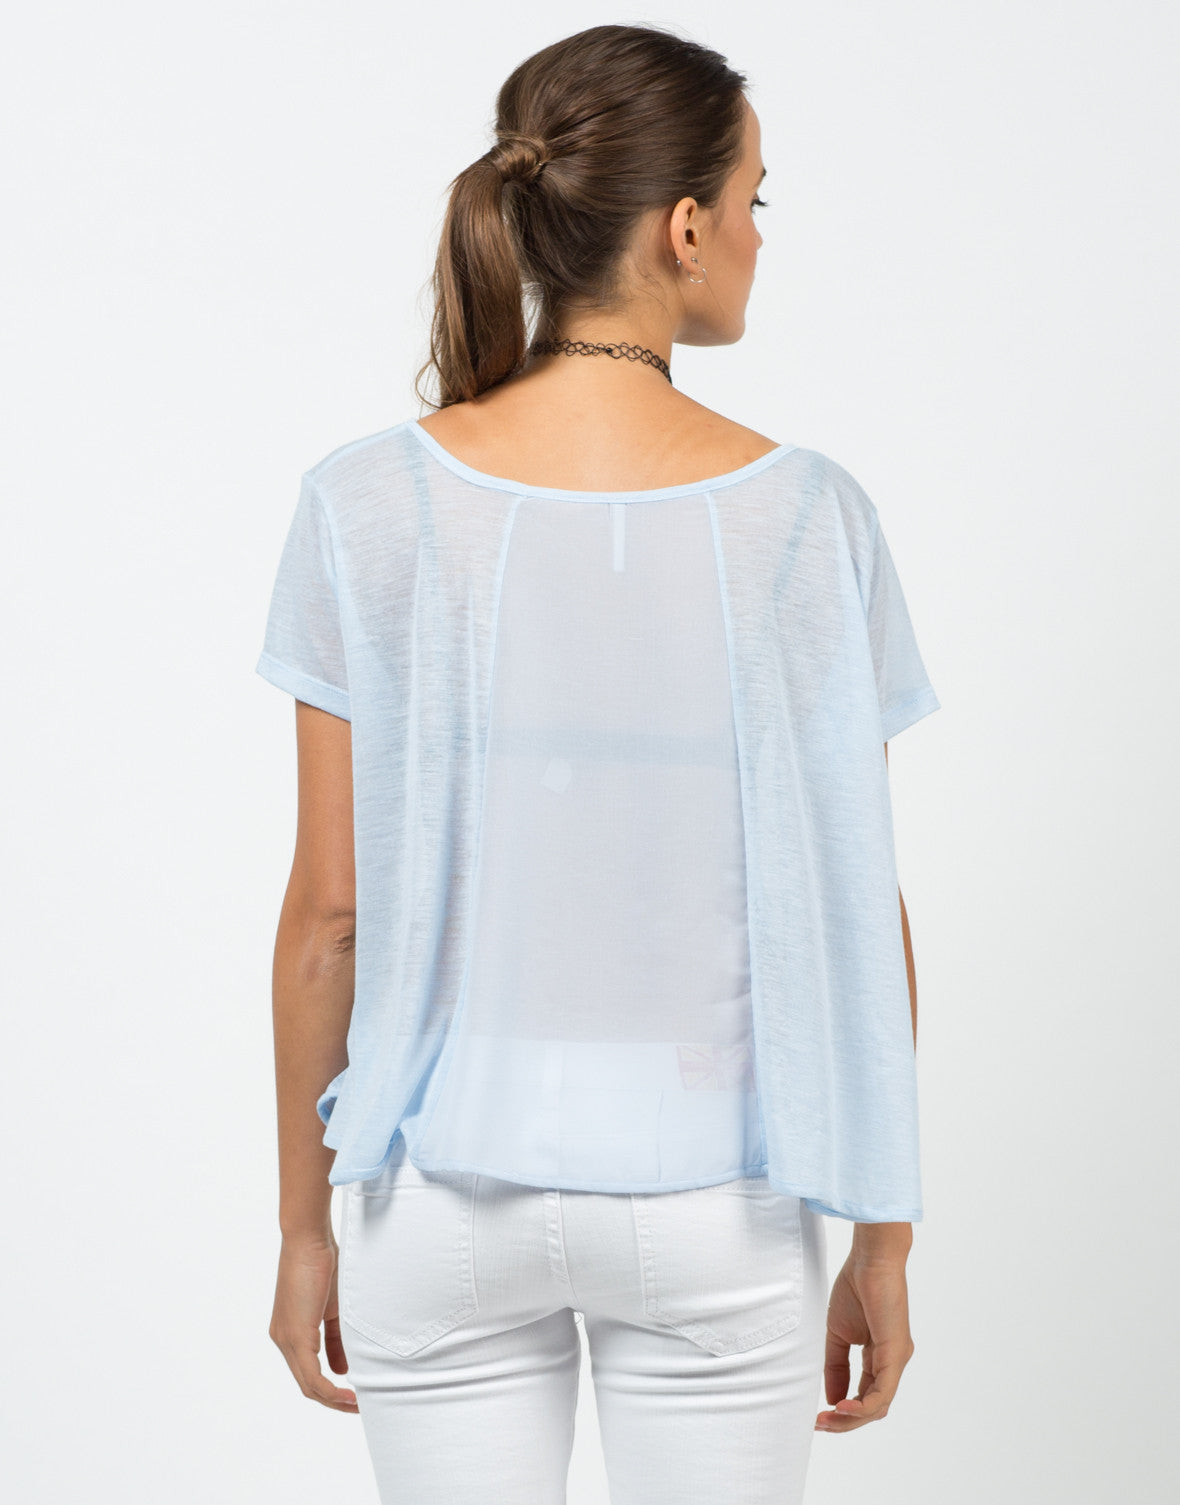 Back View of Flowy Chiffon Blouse